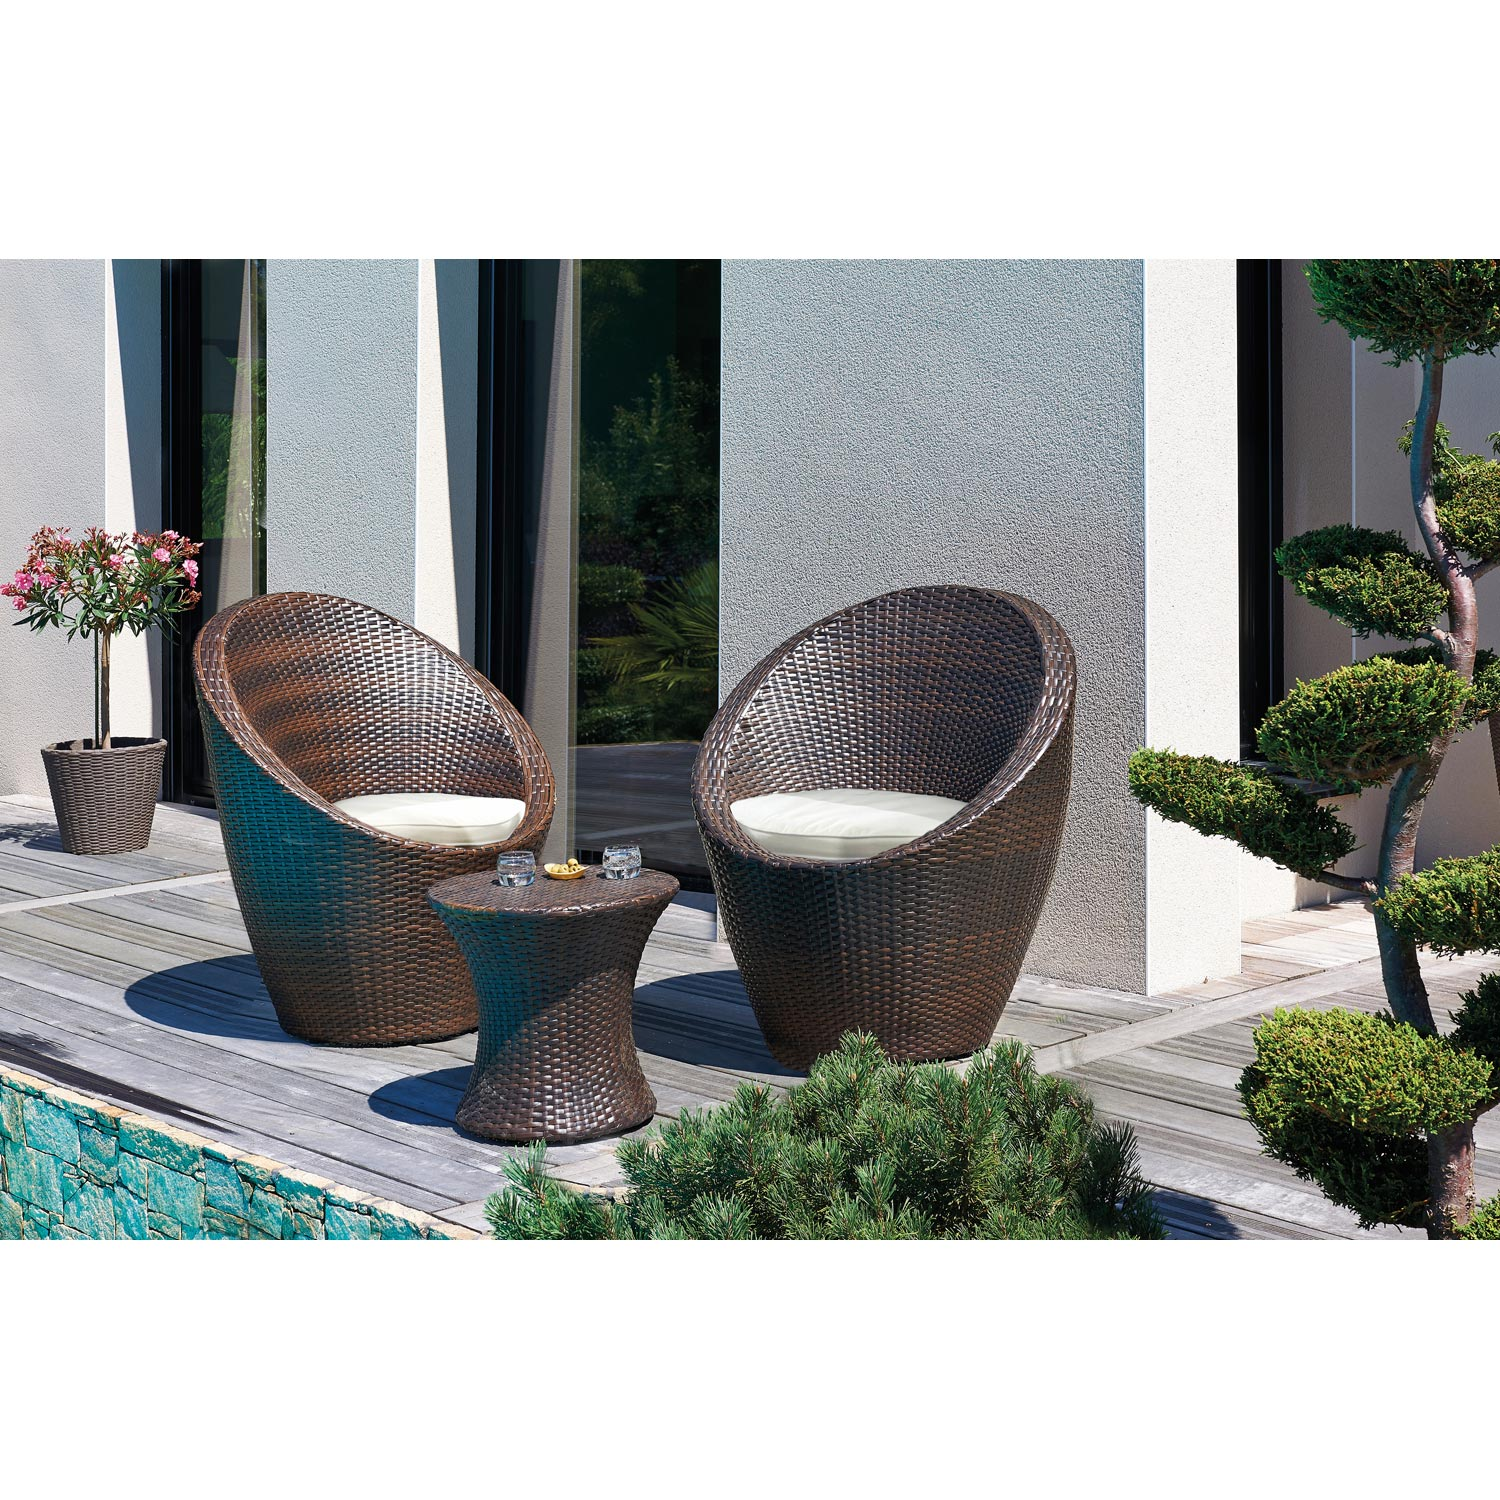 Salon bas de jardin totem r sine tress e chocolat 1 table - Salon de jardin leroy merlin resine ...